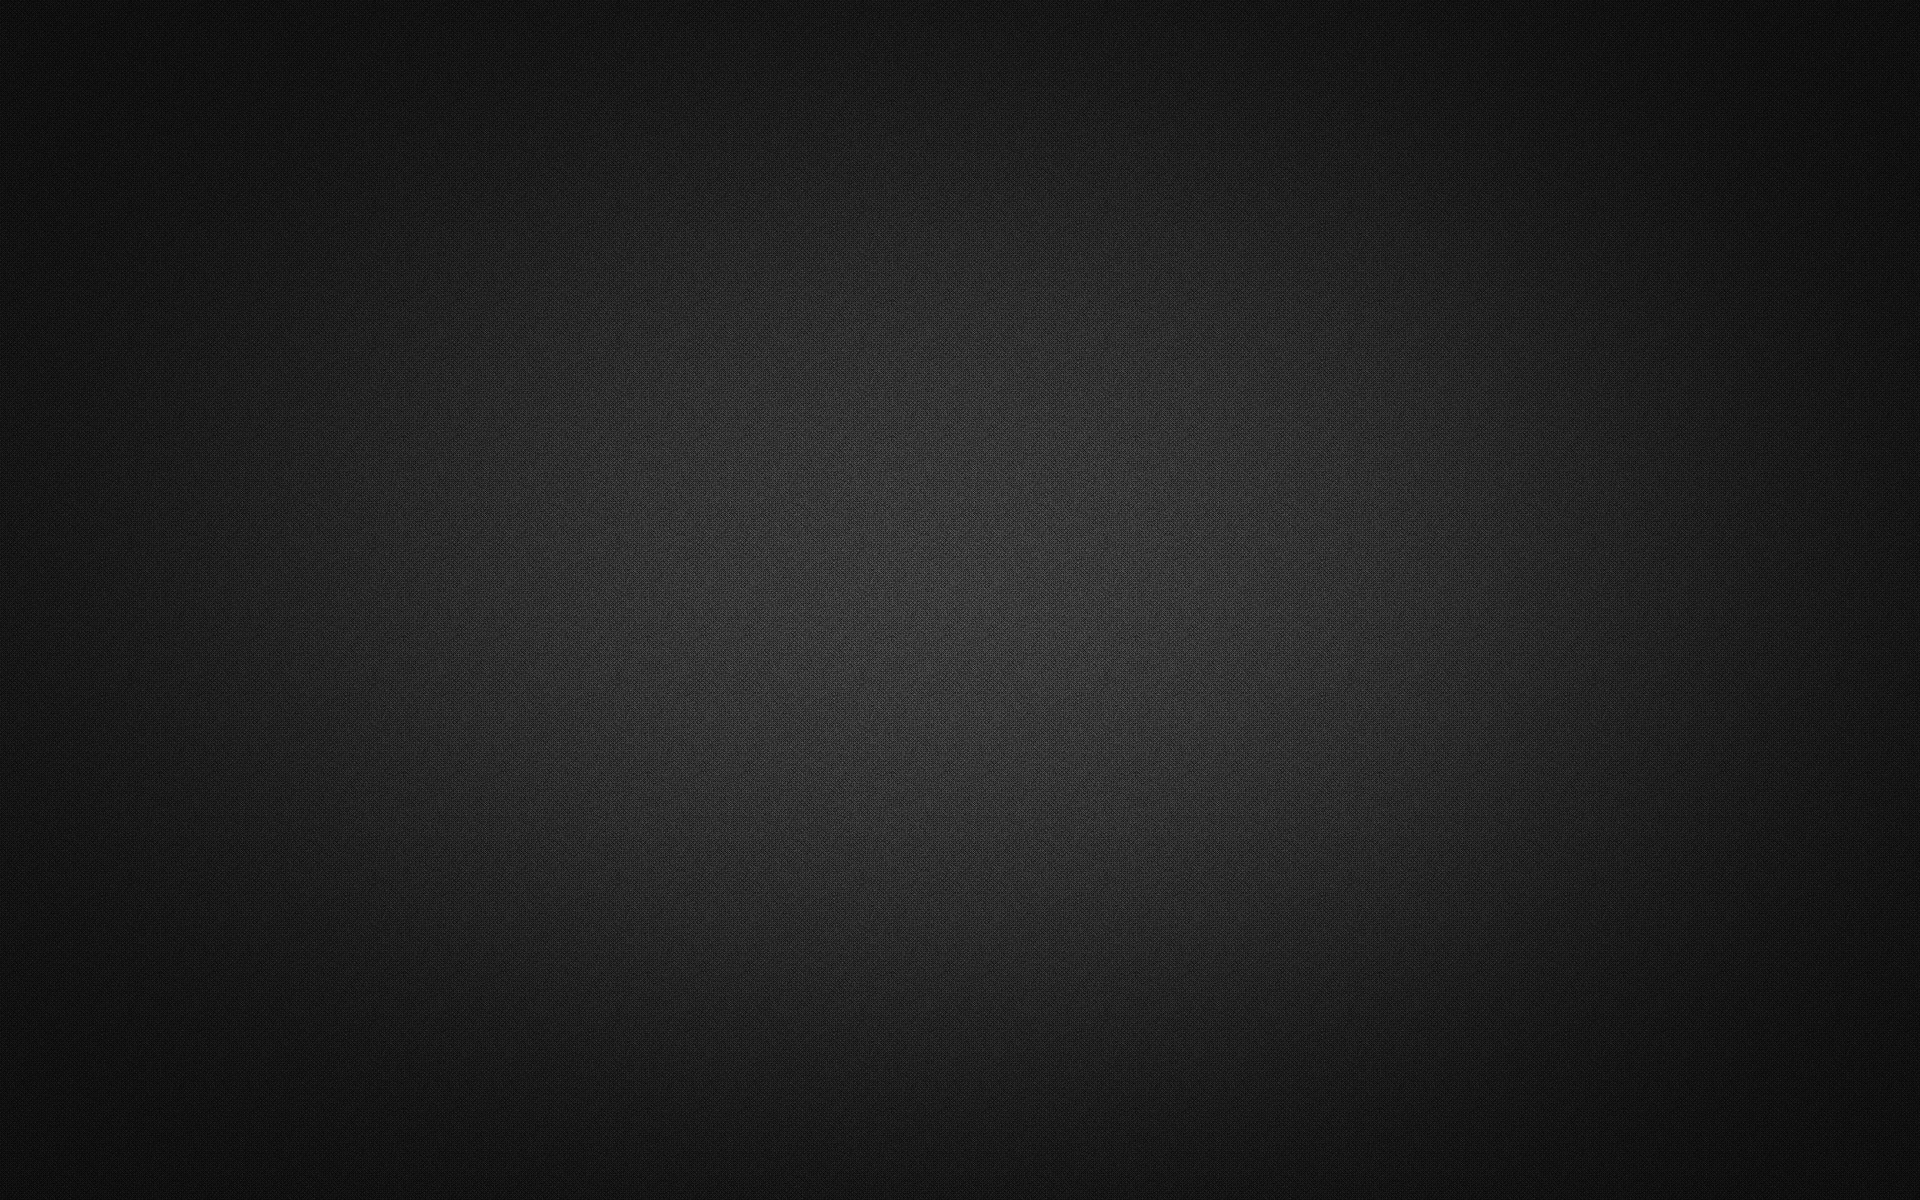 Gradient Black Background - wallpaper